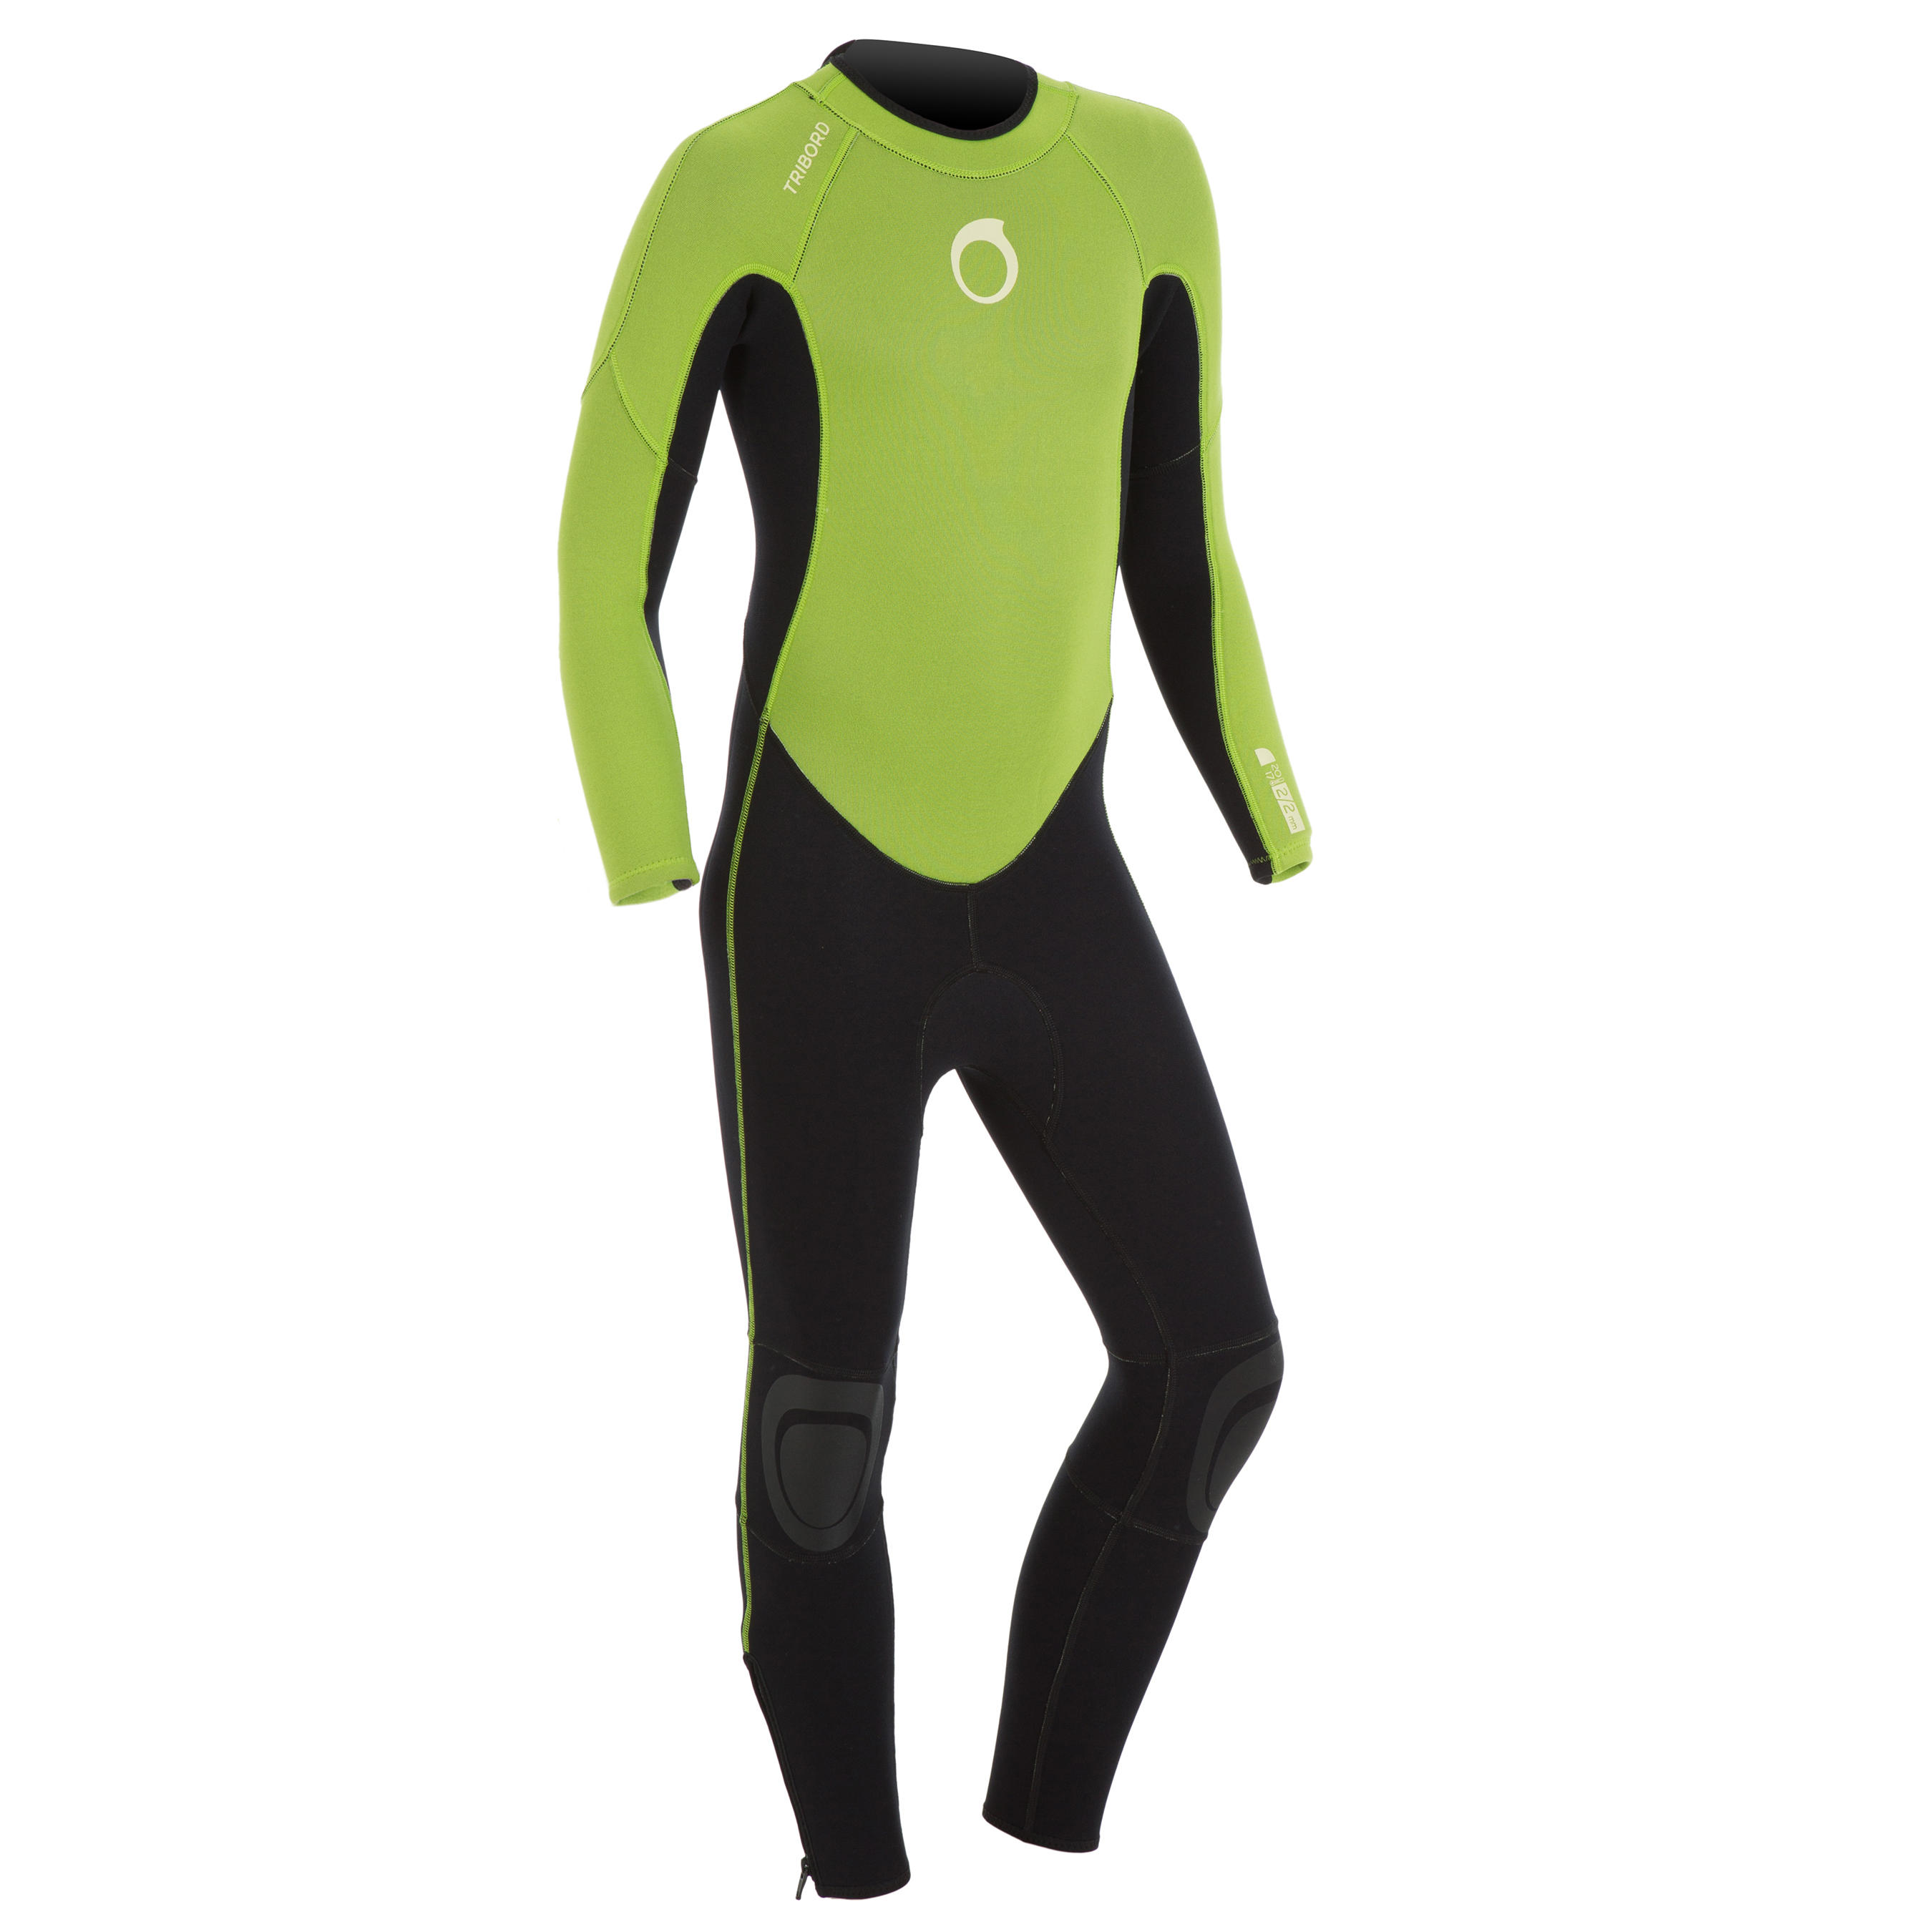 Traje Surf largo 100 Neopreno 2/2 mm Junior